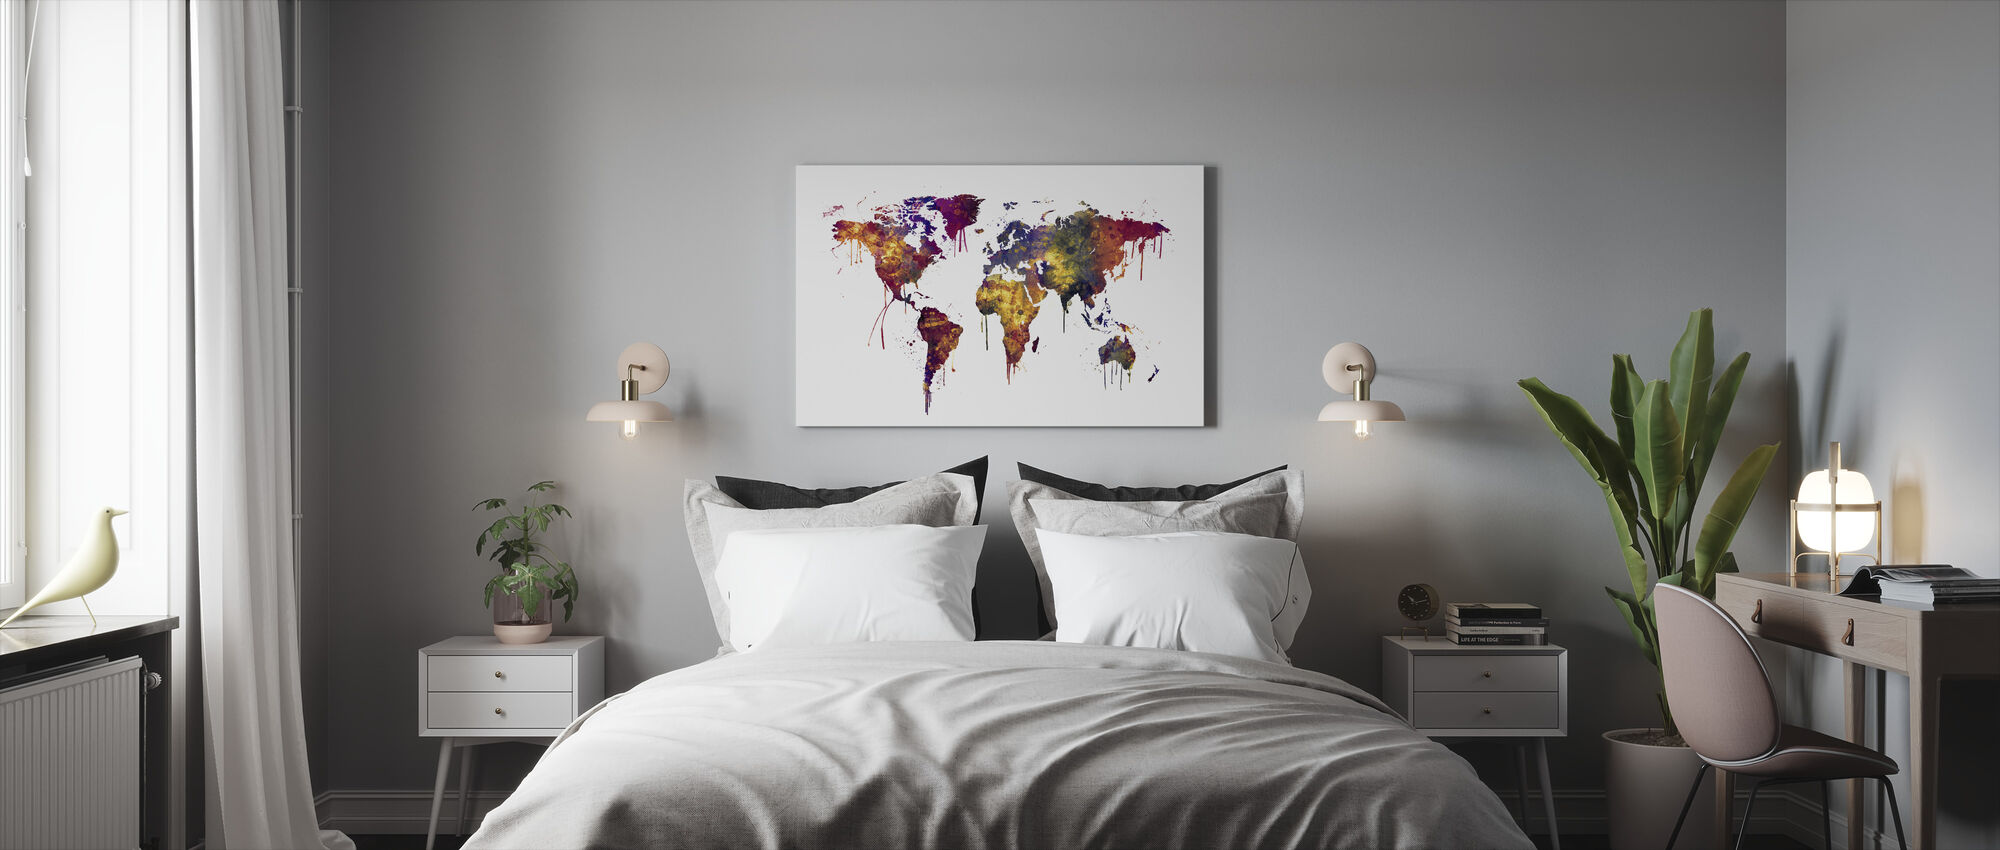 Watercolor World Map 2 - Canvas print - Bedroom